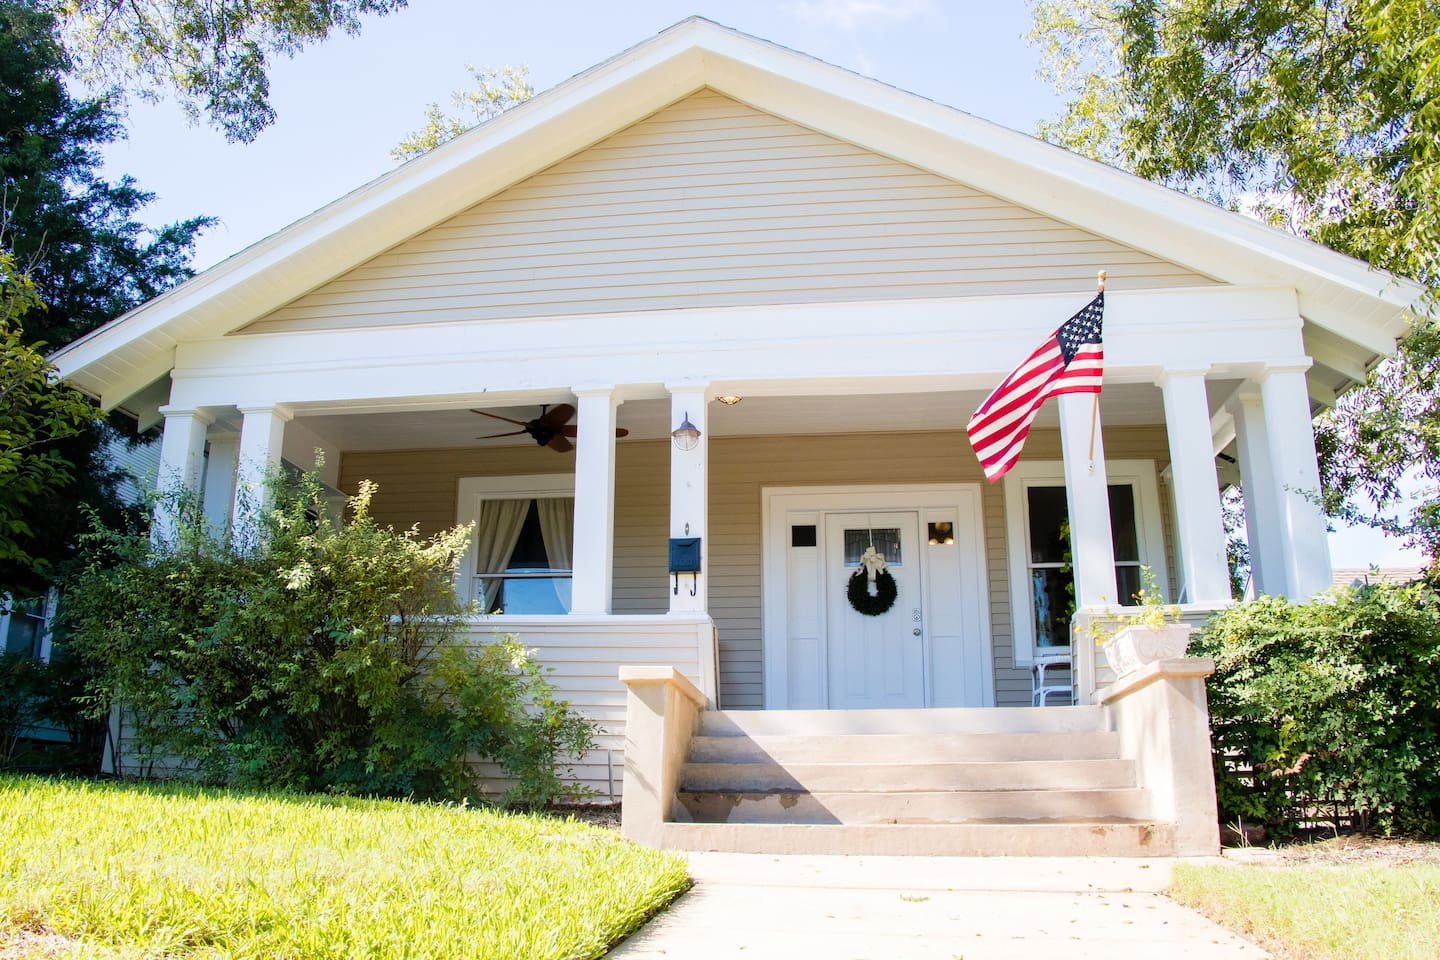 The Crow's Nest~ This 1913 bungalow is nestled between pecan trees and only a few doors down to our other Airbnb rental. So, if you are looking for plenty of room and need two homes, check us out!